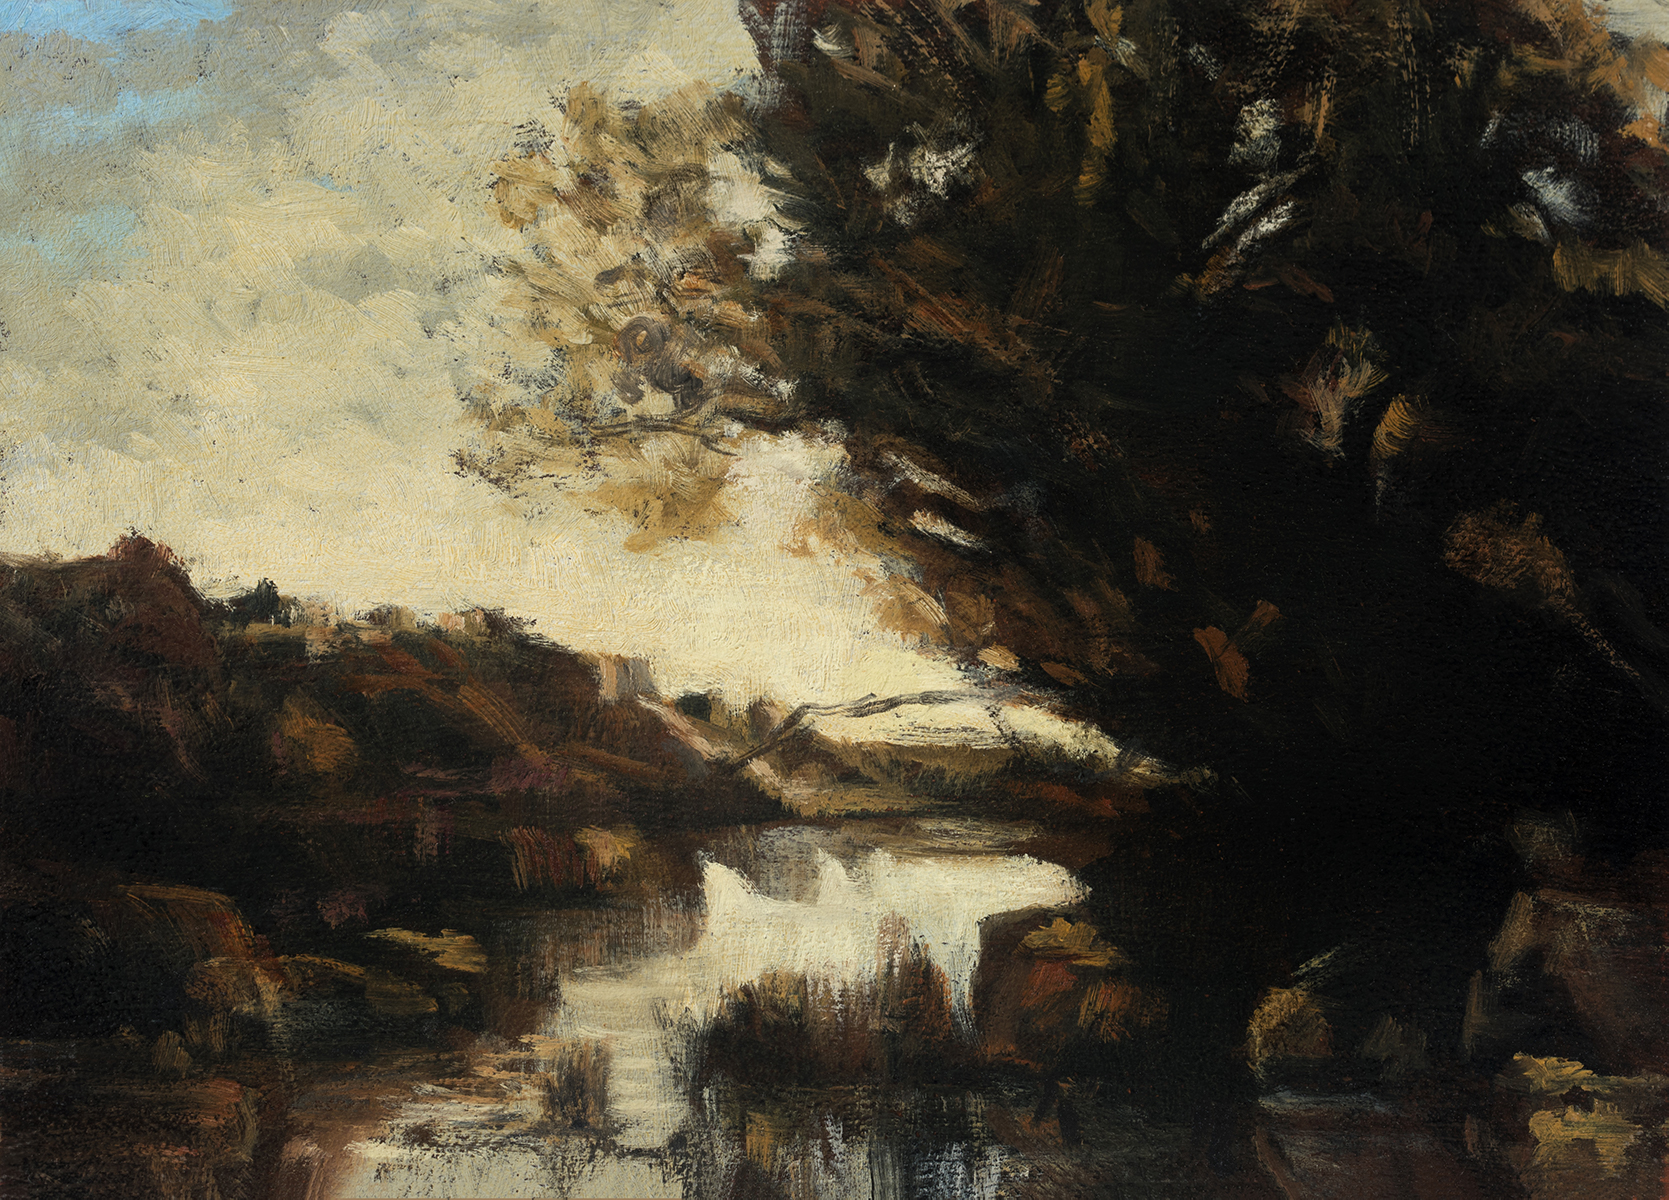 Study after: Camille Corot - Memory of Lake Nemi by M Francis McCarthy - 5x7 Oil on Wood Panel